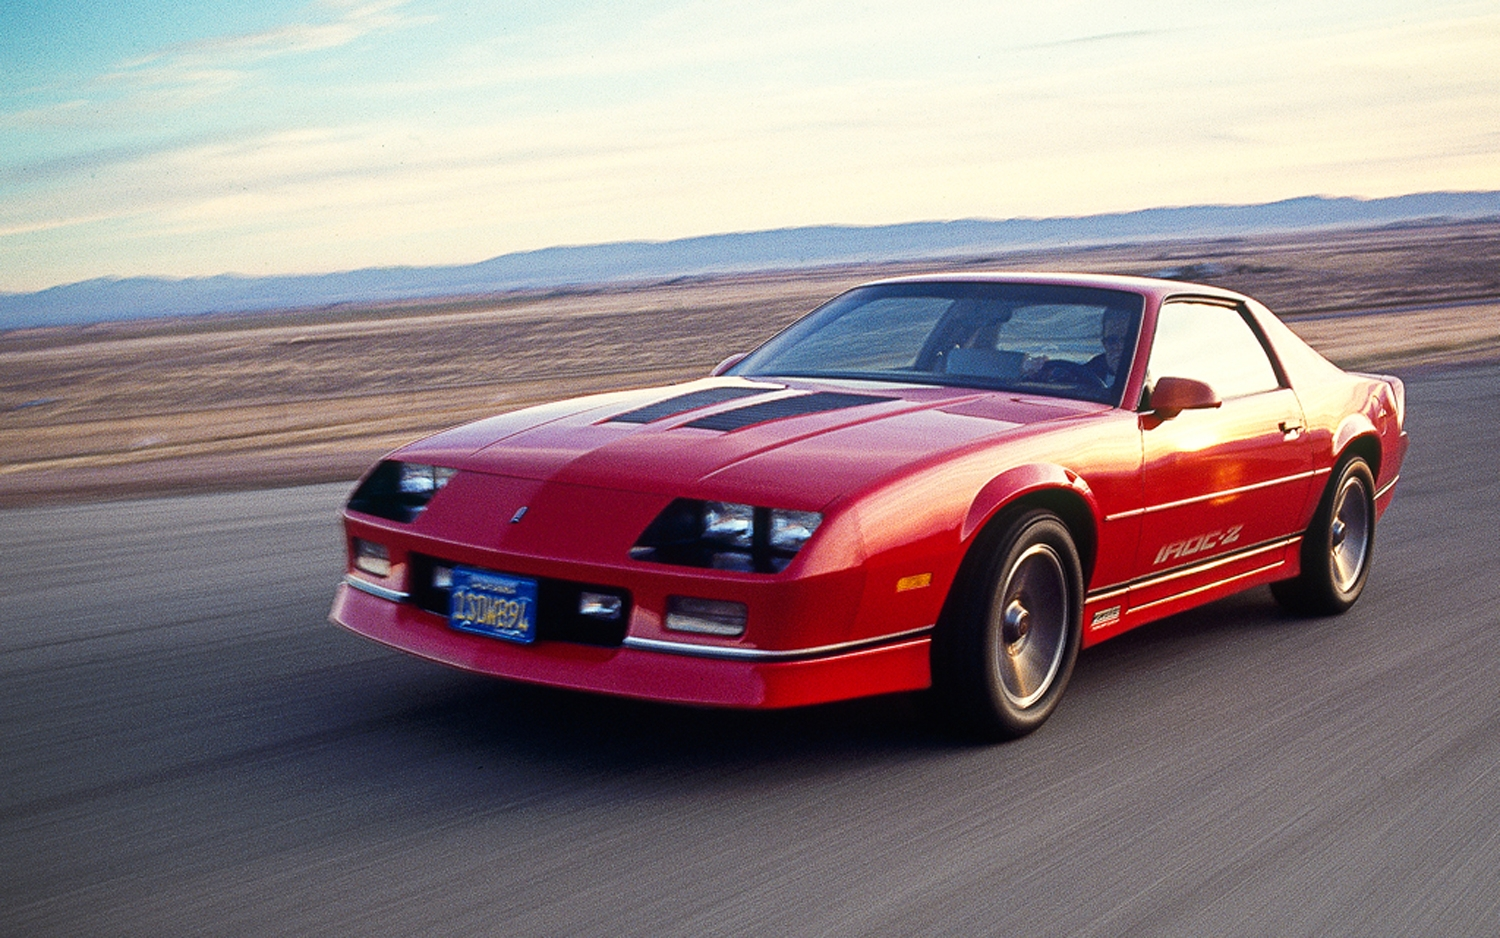 2018 Camaro Iroc Z >> Chevrolet Camaro IROC-Z Wallpapers High Quality | Download Free